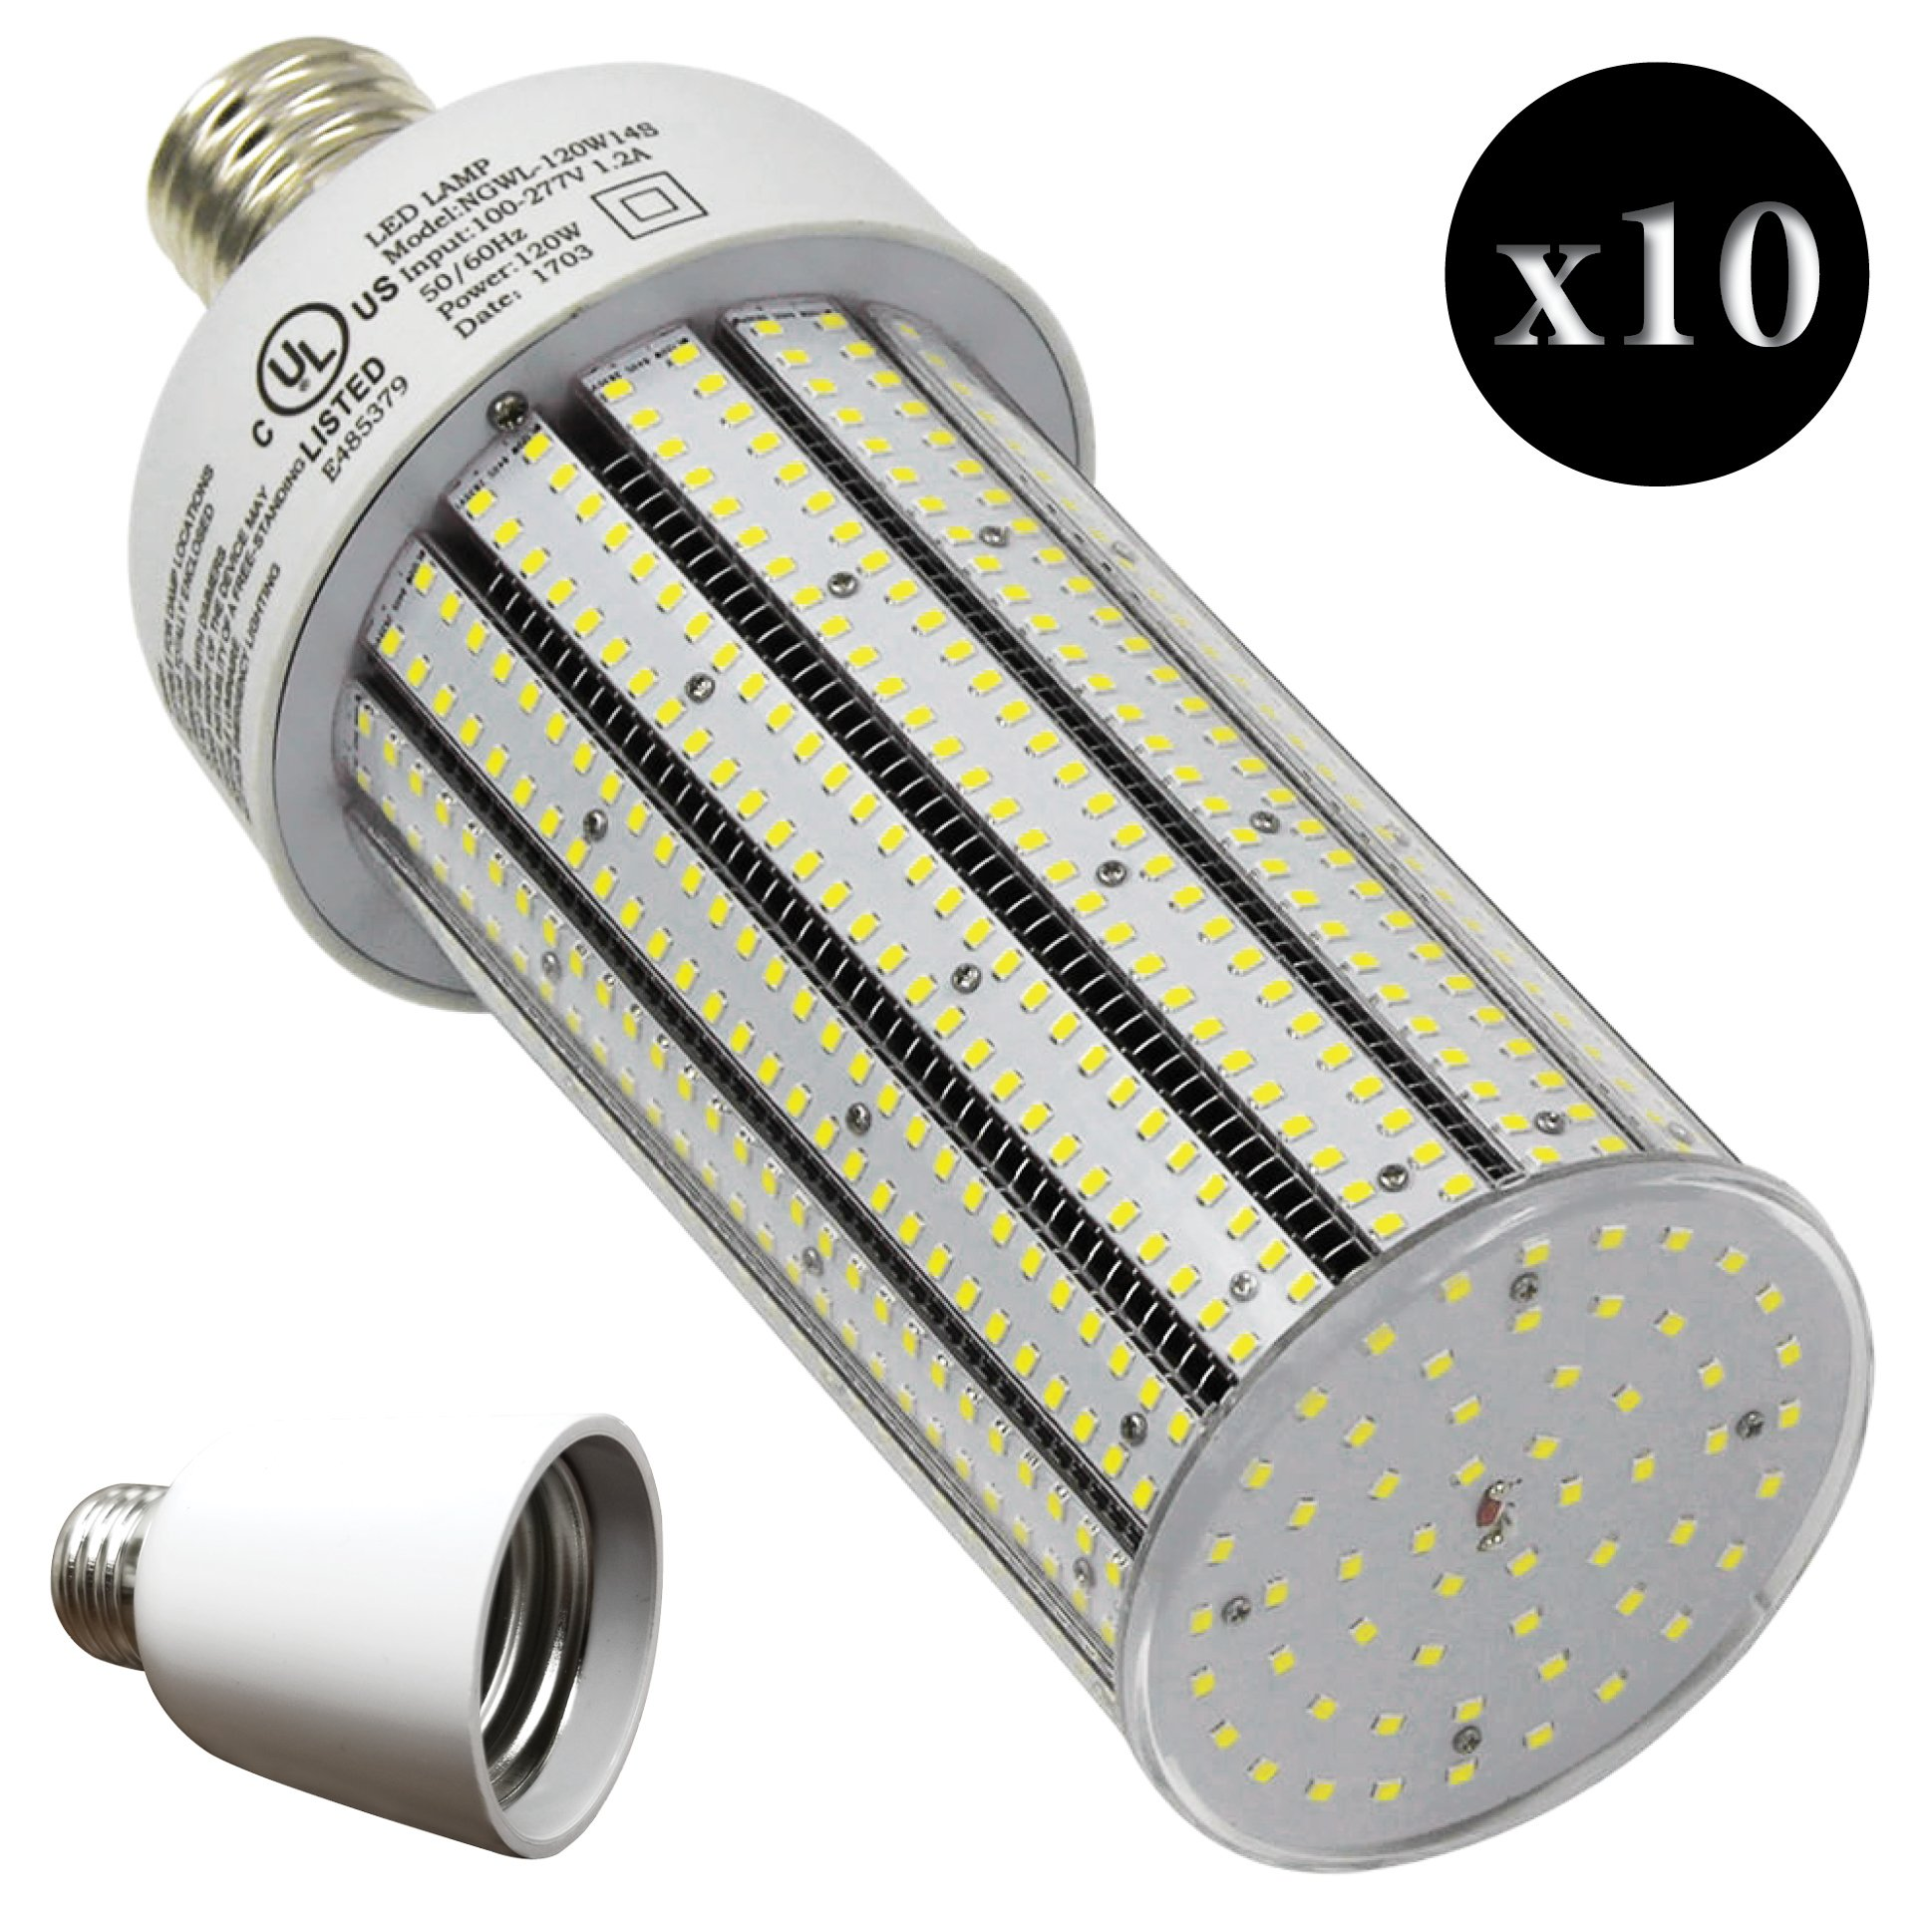 QTY 10 CC120-39 + 10 Adapters LED HIGH BAY SUPER BRIGHT INDUSTRIAL LED LIGHT E39 6500K WHITE 120W (EQUIVALENT TO 720W) by VLYNX